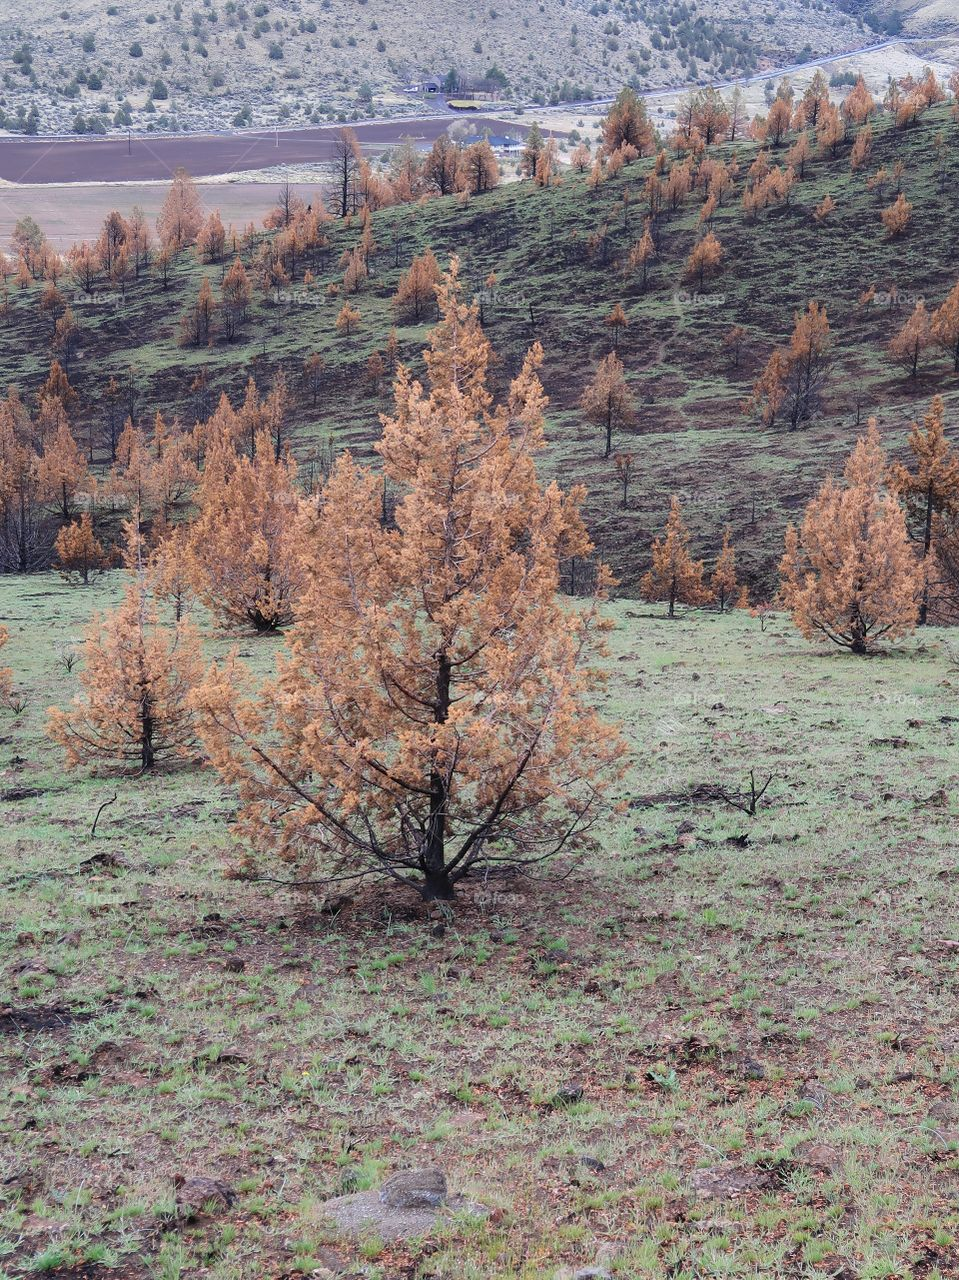 Juniper trees with brown needles and black trunks from a fire a year ago contrast with the bright green grass of spring on the hills above farmland in Central Oregon.